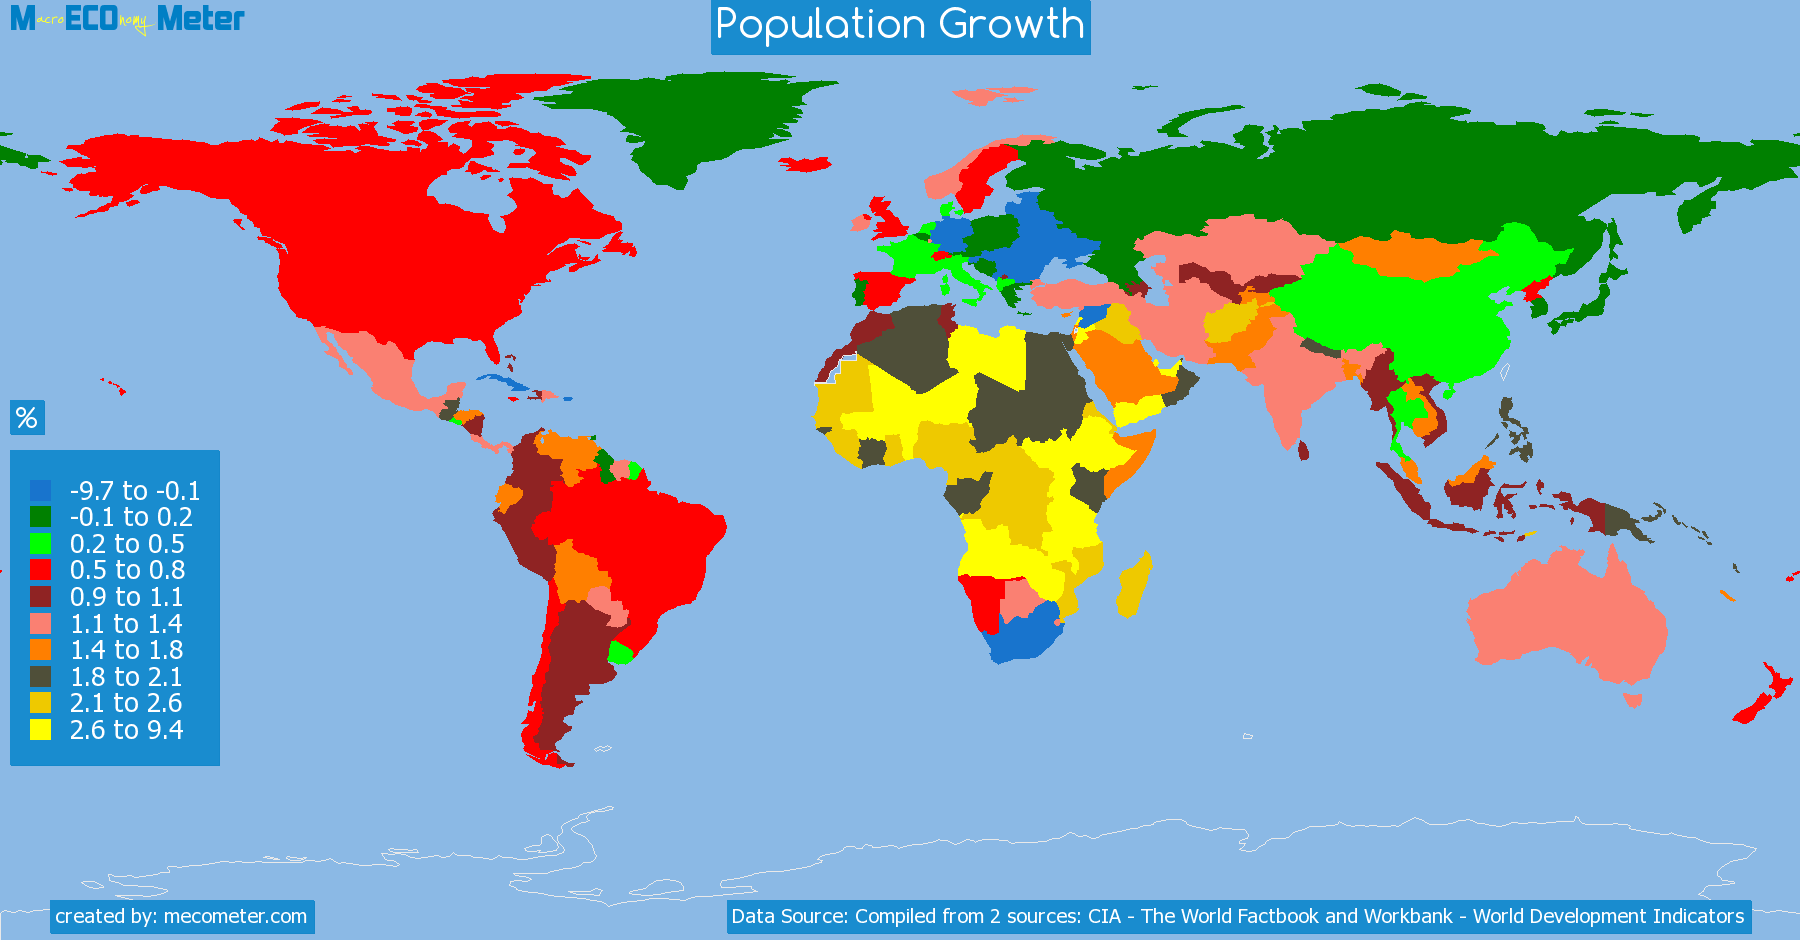 list of countries by Population Growth